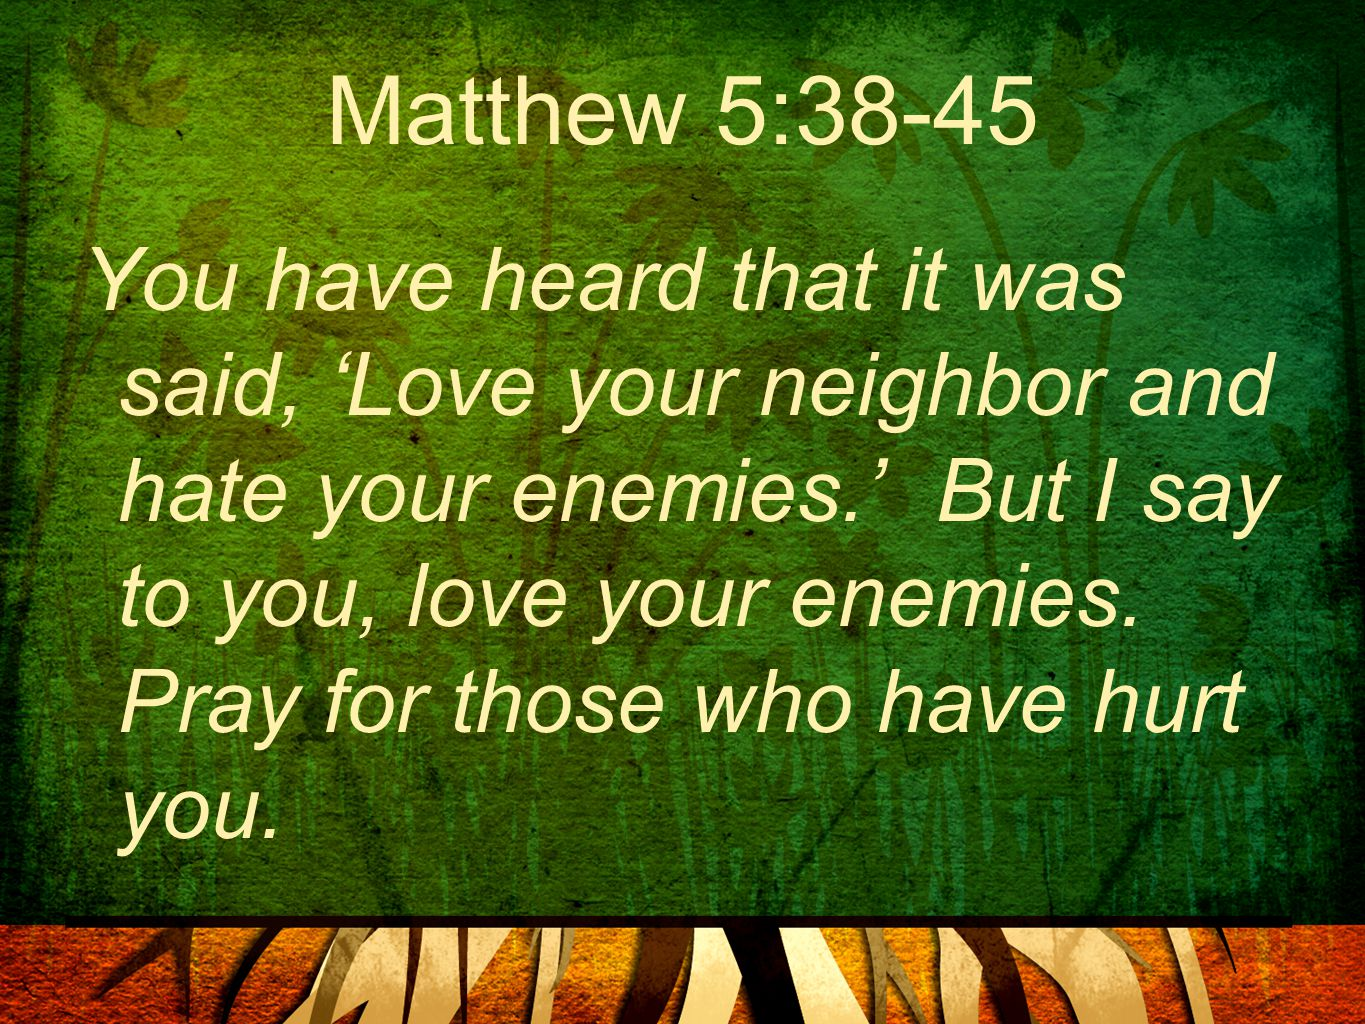 Matthew 5:38-45 You have heard that it was said, 'Love your neighbor and hate your enemies.' But I say to you, love your enemies. Pray for those who h